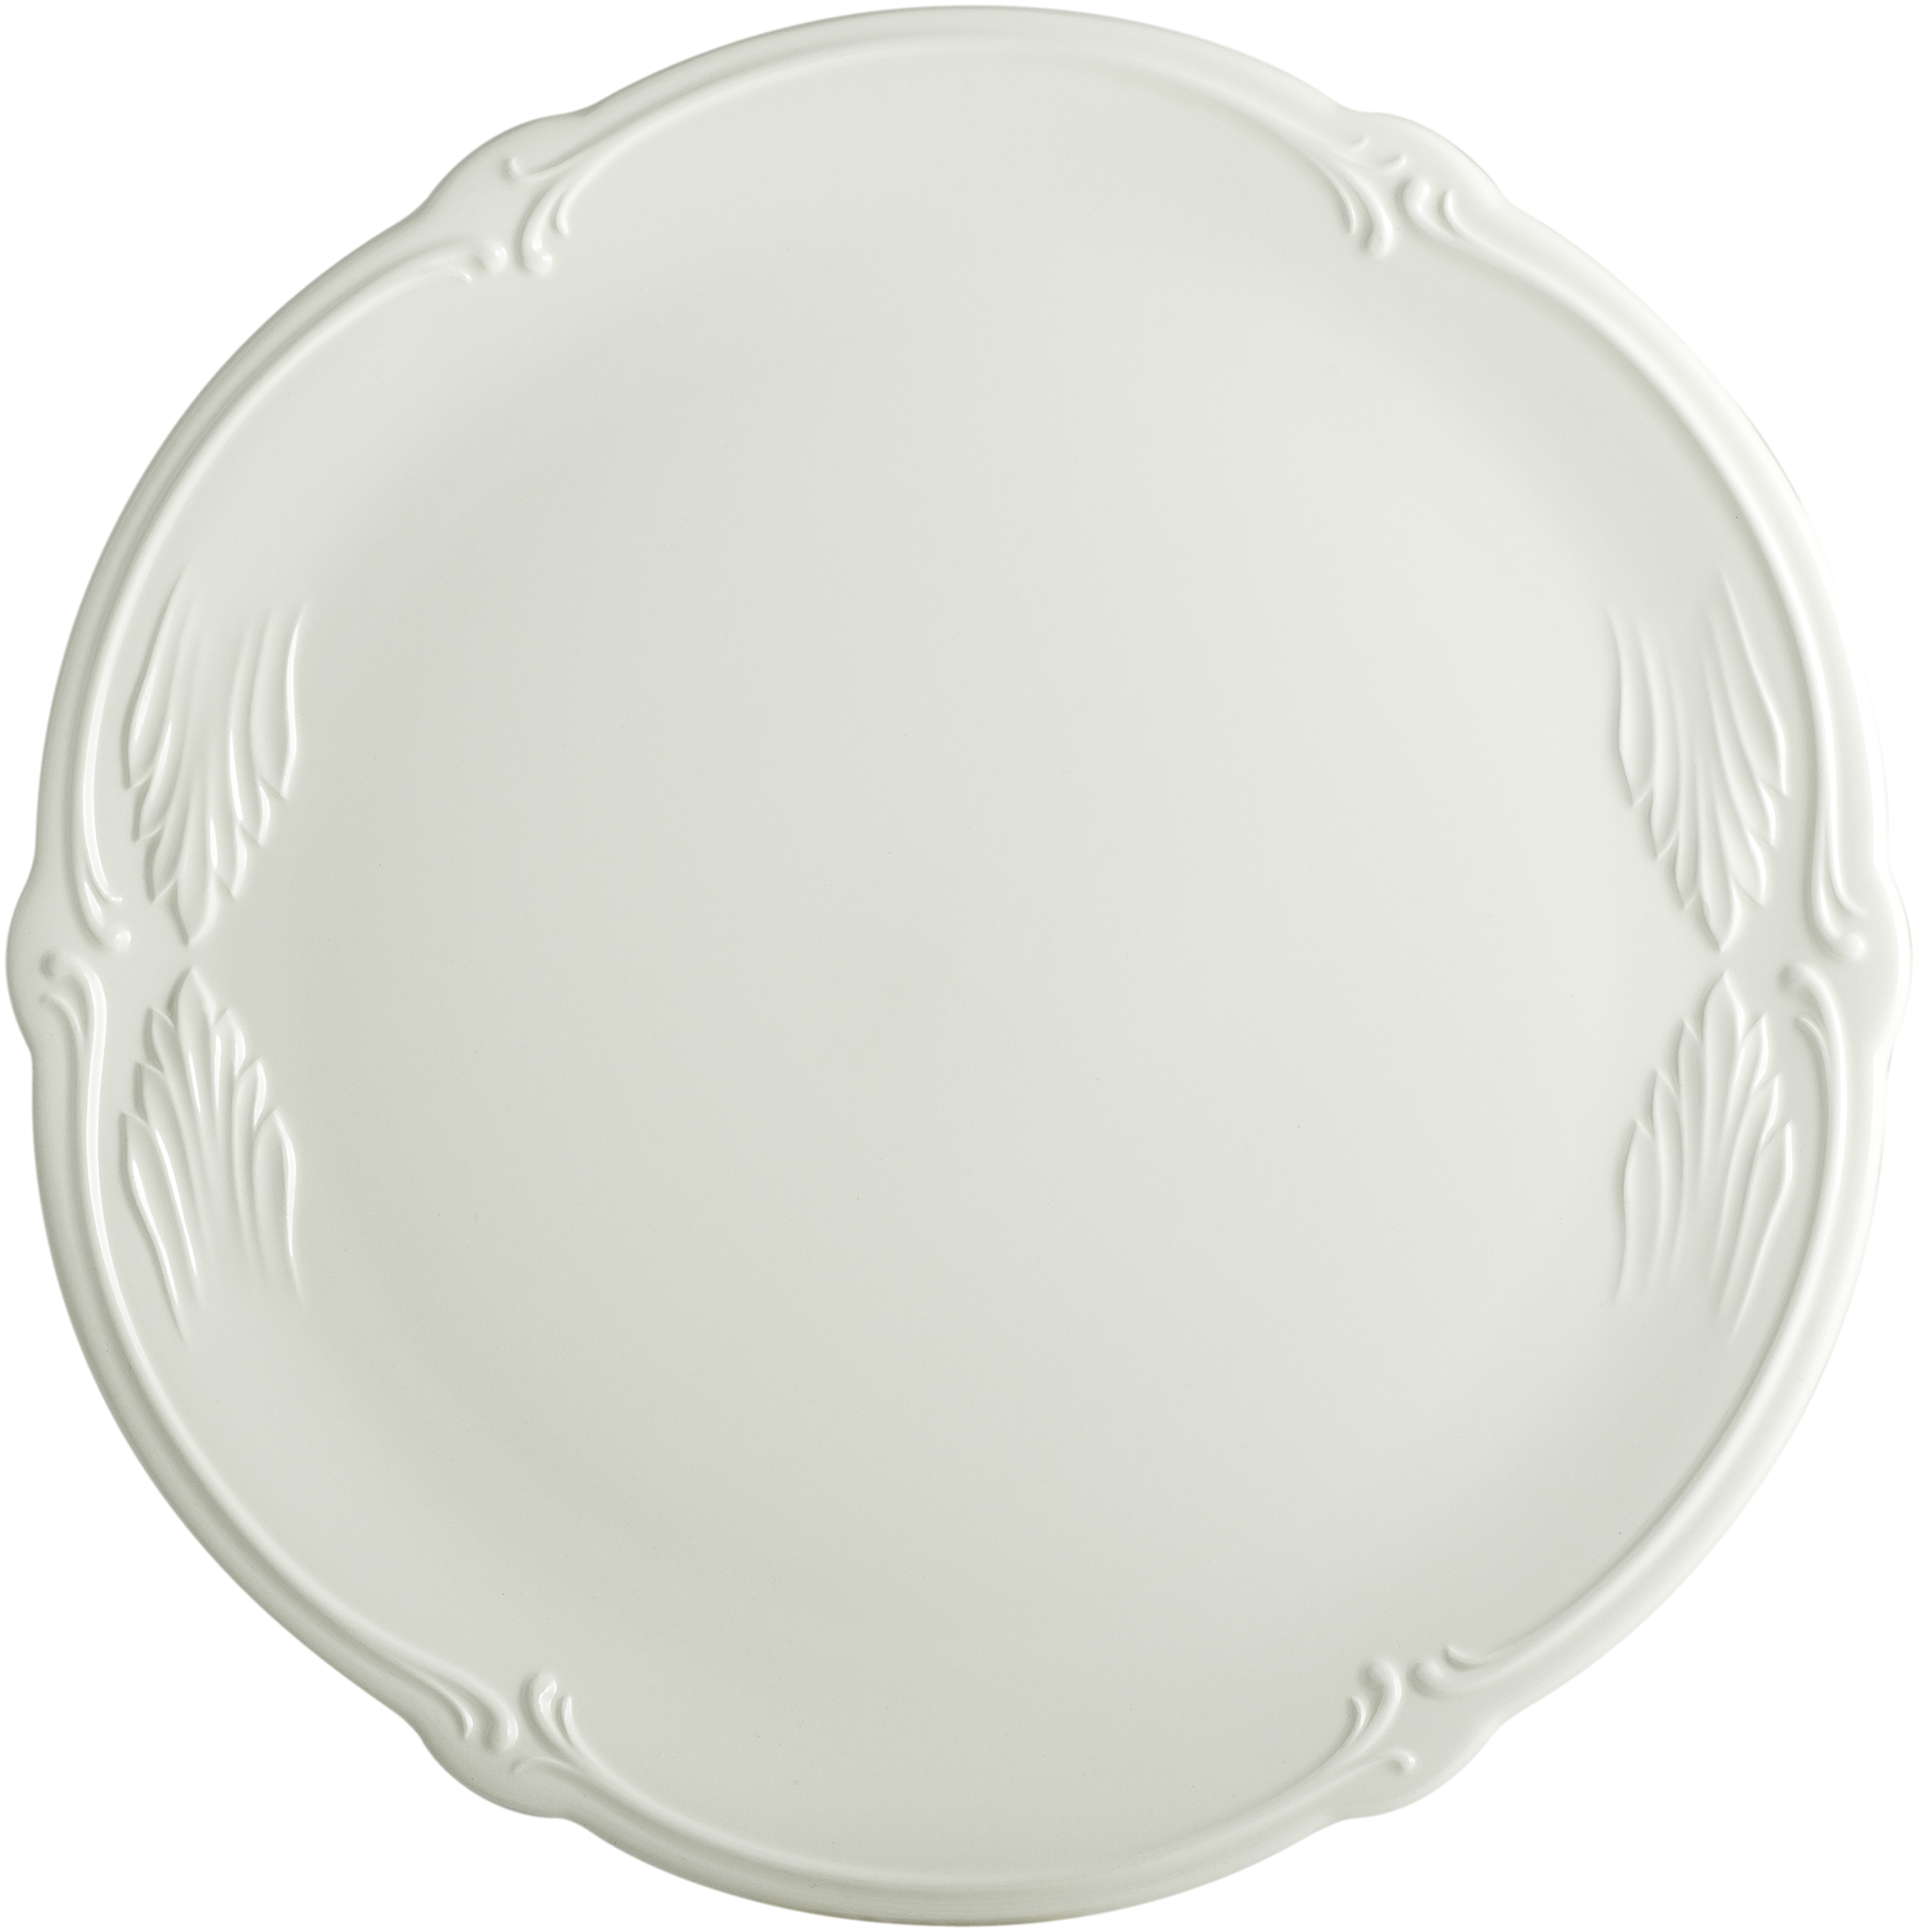 Rocaille White Cake Platter 13 7/16 In Dia | Gracious Style  sc 1 st  Gracious Style & Gien France Rocaille White Dinnerware | Gracious Style